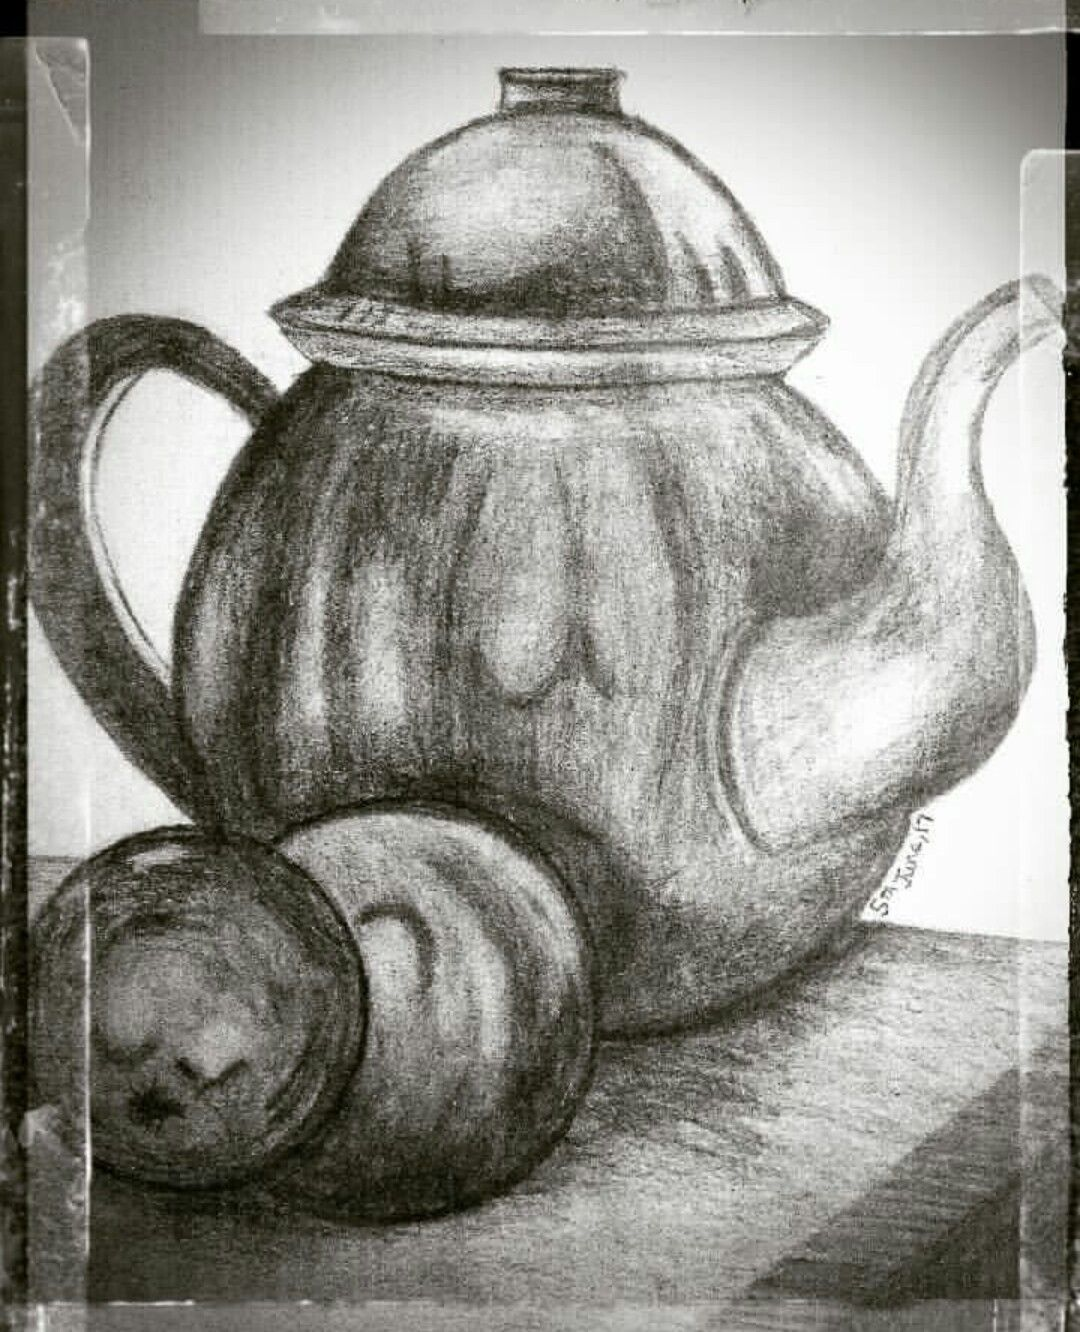 Still life made with pencil shading 😉📔🖊📋📏✏😊